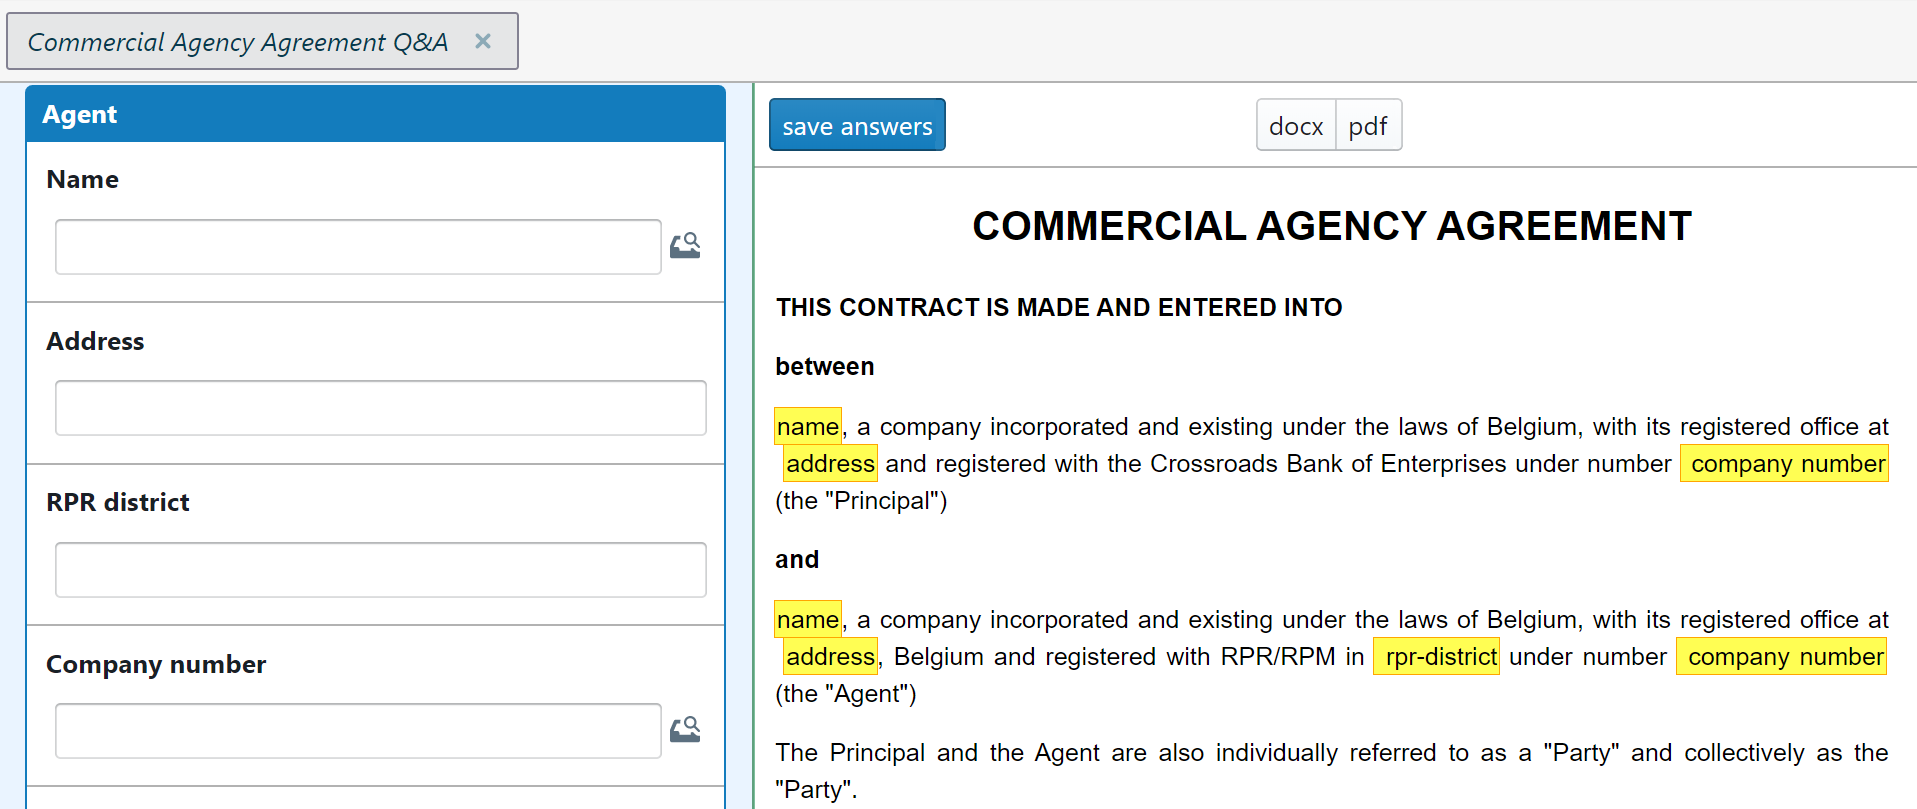 Clausebase-screenshot - commercial agency agreement